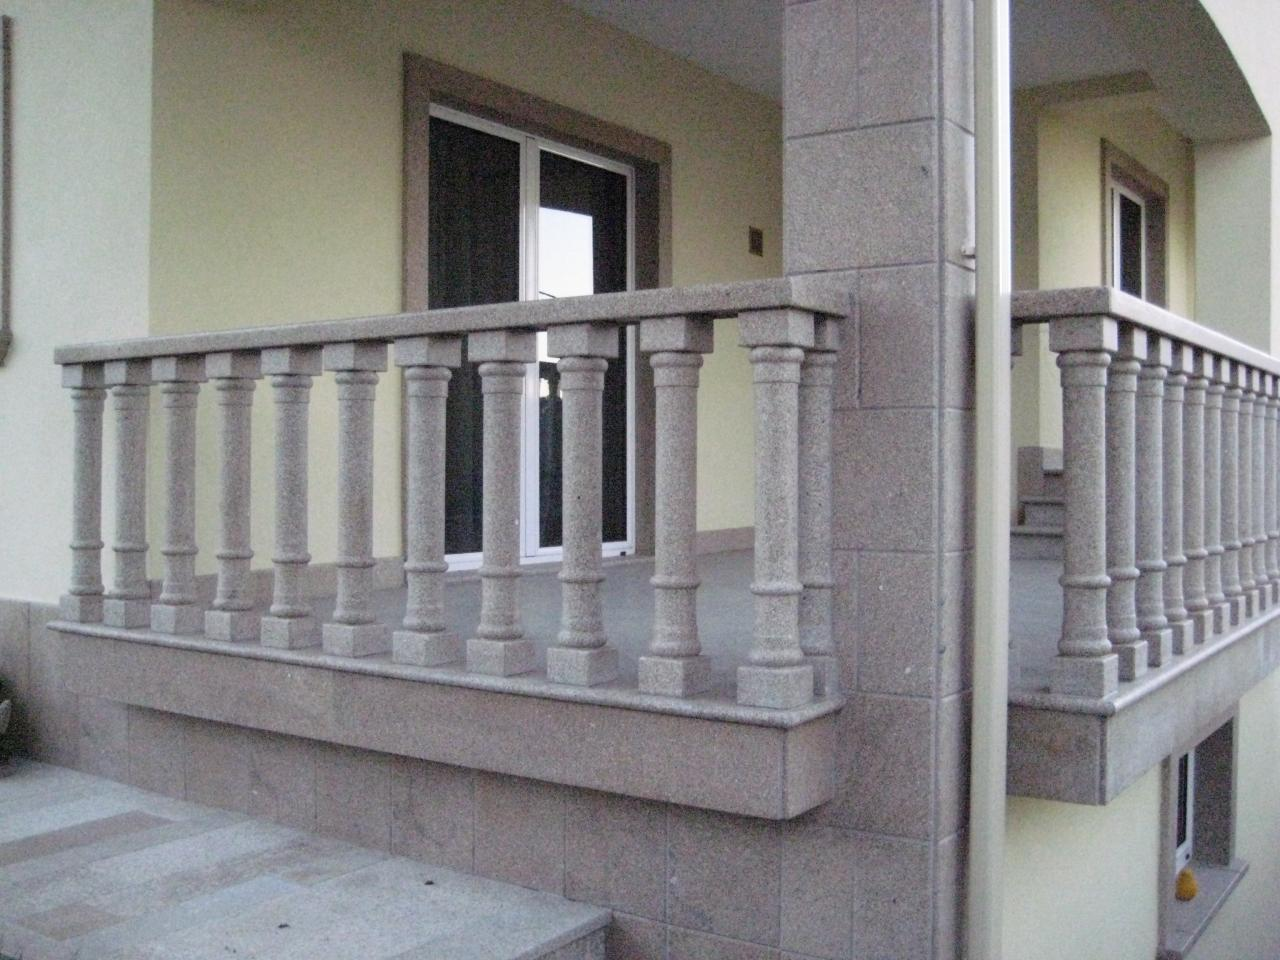 Travertin Exterieur Balustre